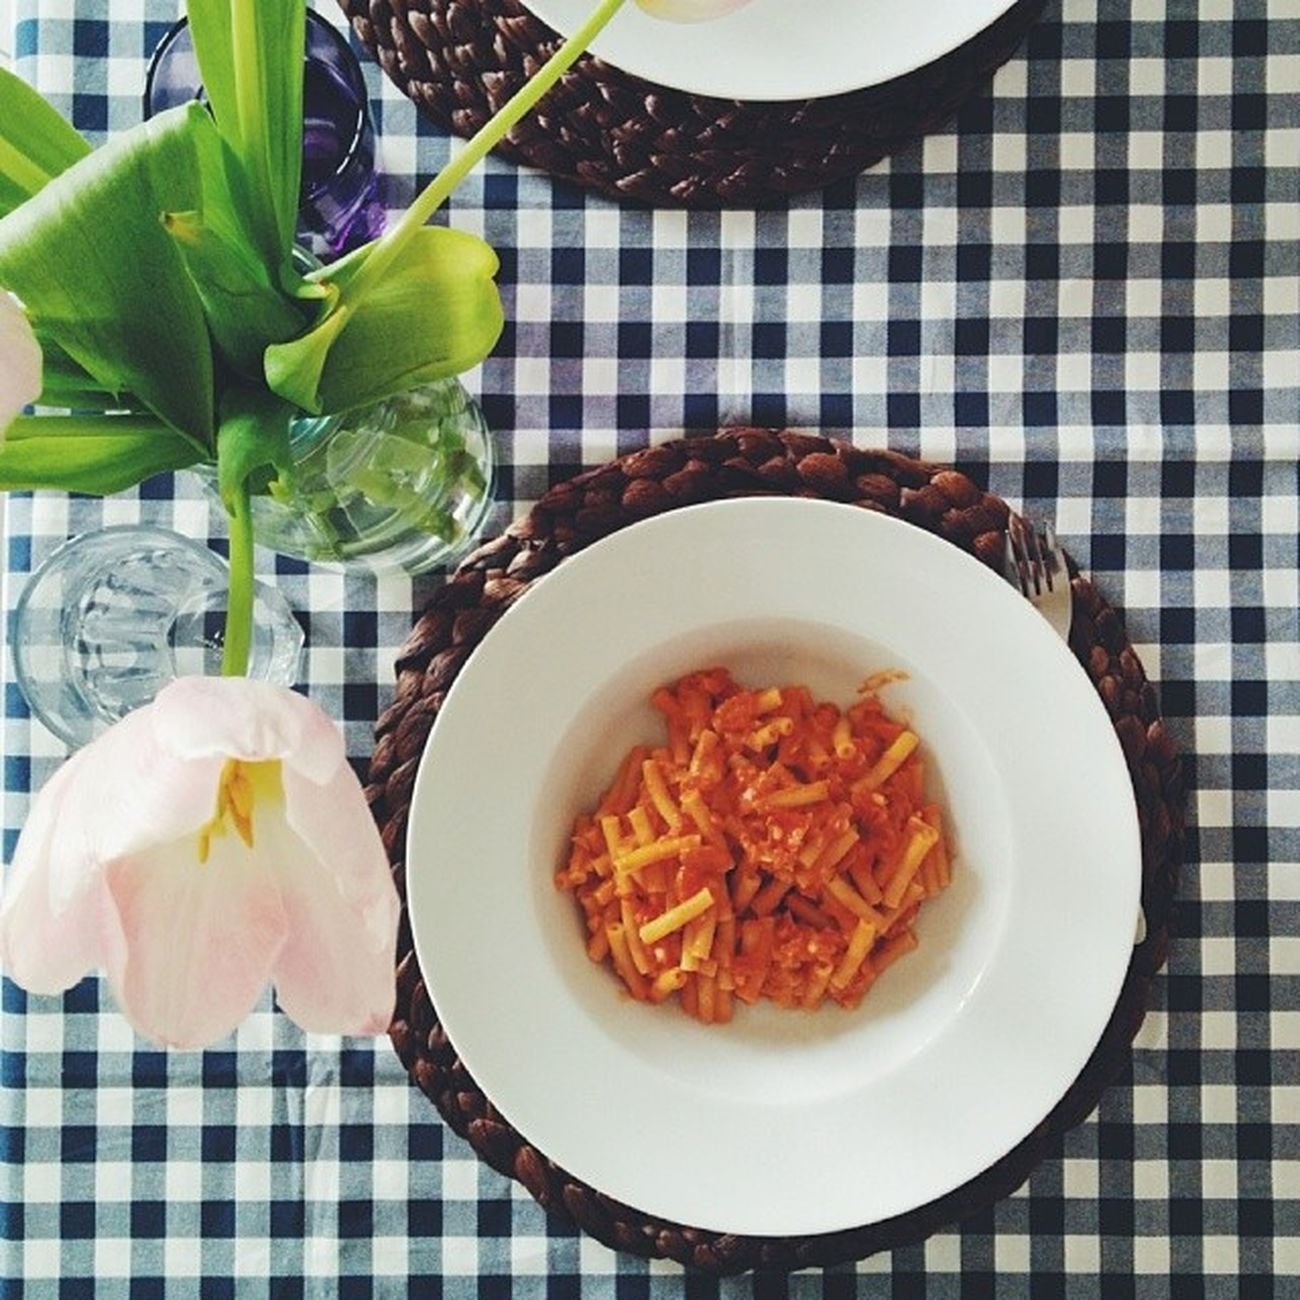 Pasta with lots of tomatoes, onions and peanut butter to cheer up this gloomy day 🍝 I love the new table cloth we bought in IKEA. And the tulips!🌷Our kitchen is so spring, it's awesome 😊 Pasta Eataly Foodiesfeed Food foodsii foodstagram foodgram instafood foodlove foodporn foodstyling foodie eatclean wholefood healthy healthyfood foodphotography nexus5 vsco vscocam vscogood vscofood vsco_food instagood tasty delicious heaveninmouth spring vscovibe